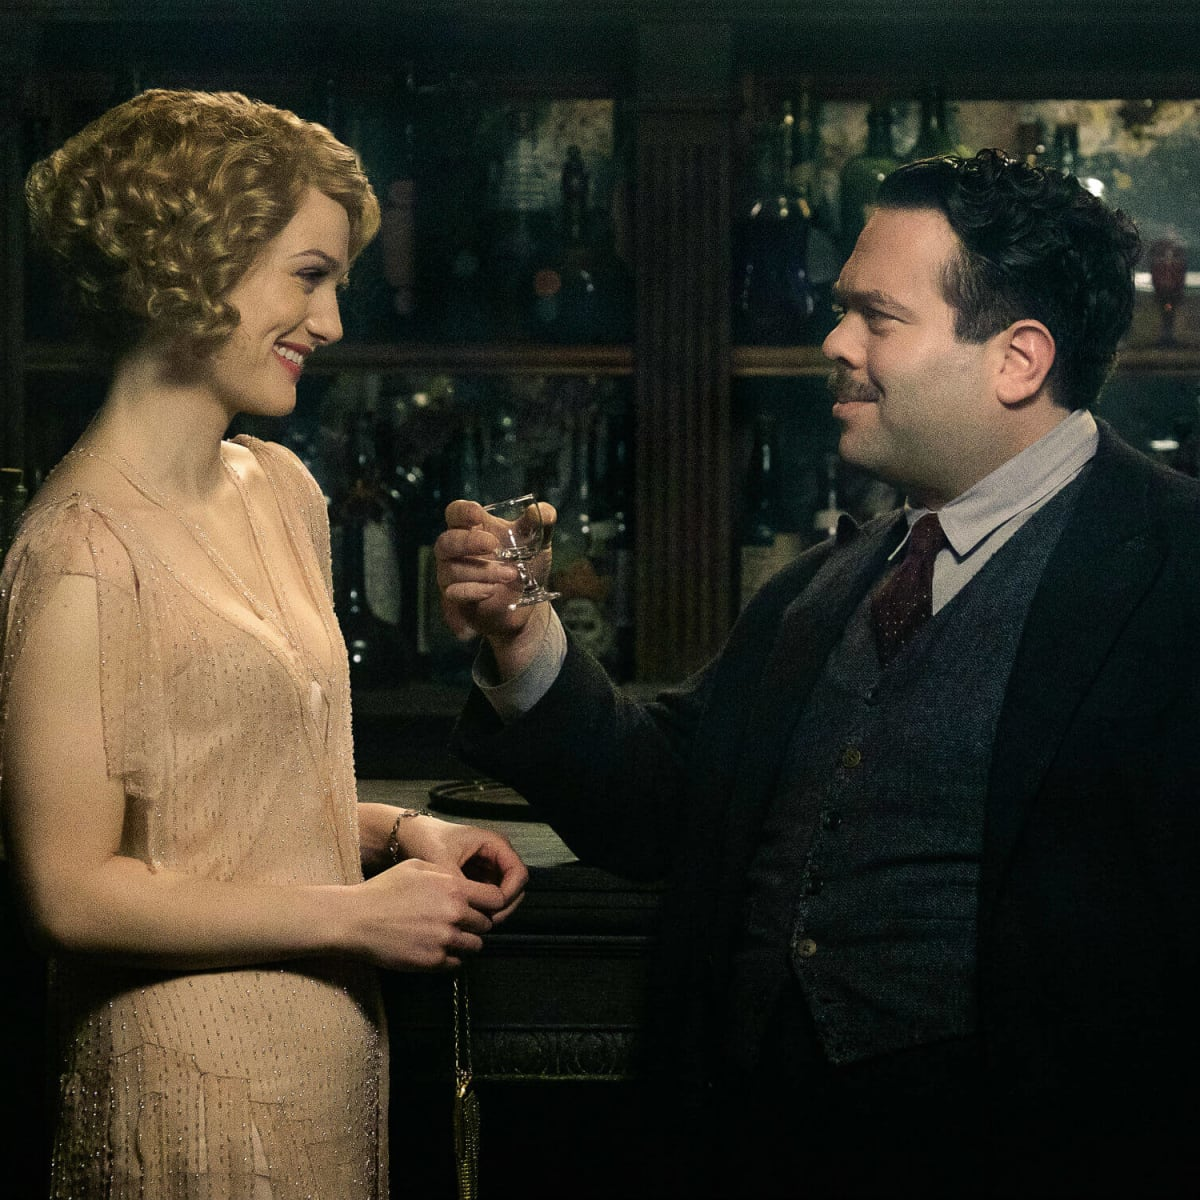 Alison Sudol and Dan Fogler in Fantastic Beasts and Where to Find Them